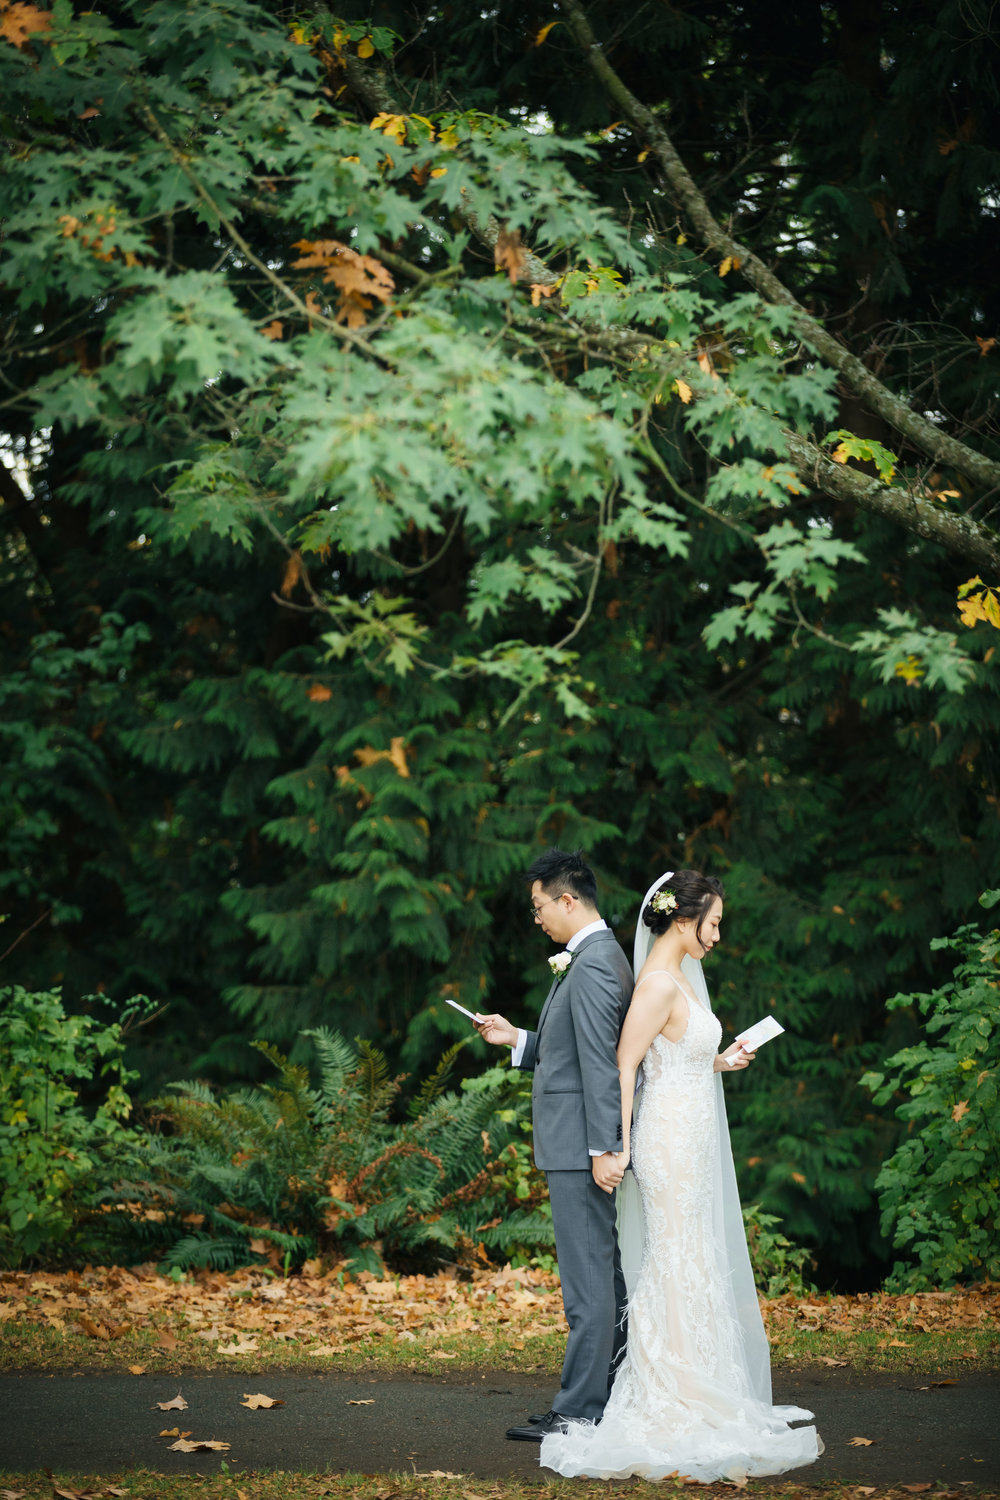 THE FIRST LOOK THAT WE SHARED MADE TWINKLES IN MY EYES. - Lulu & Ben